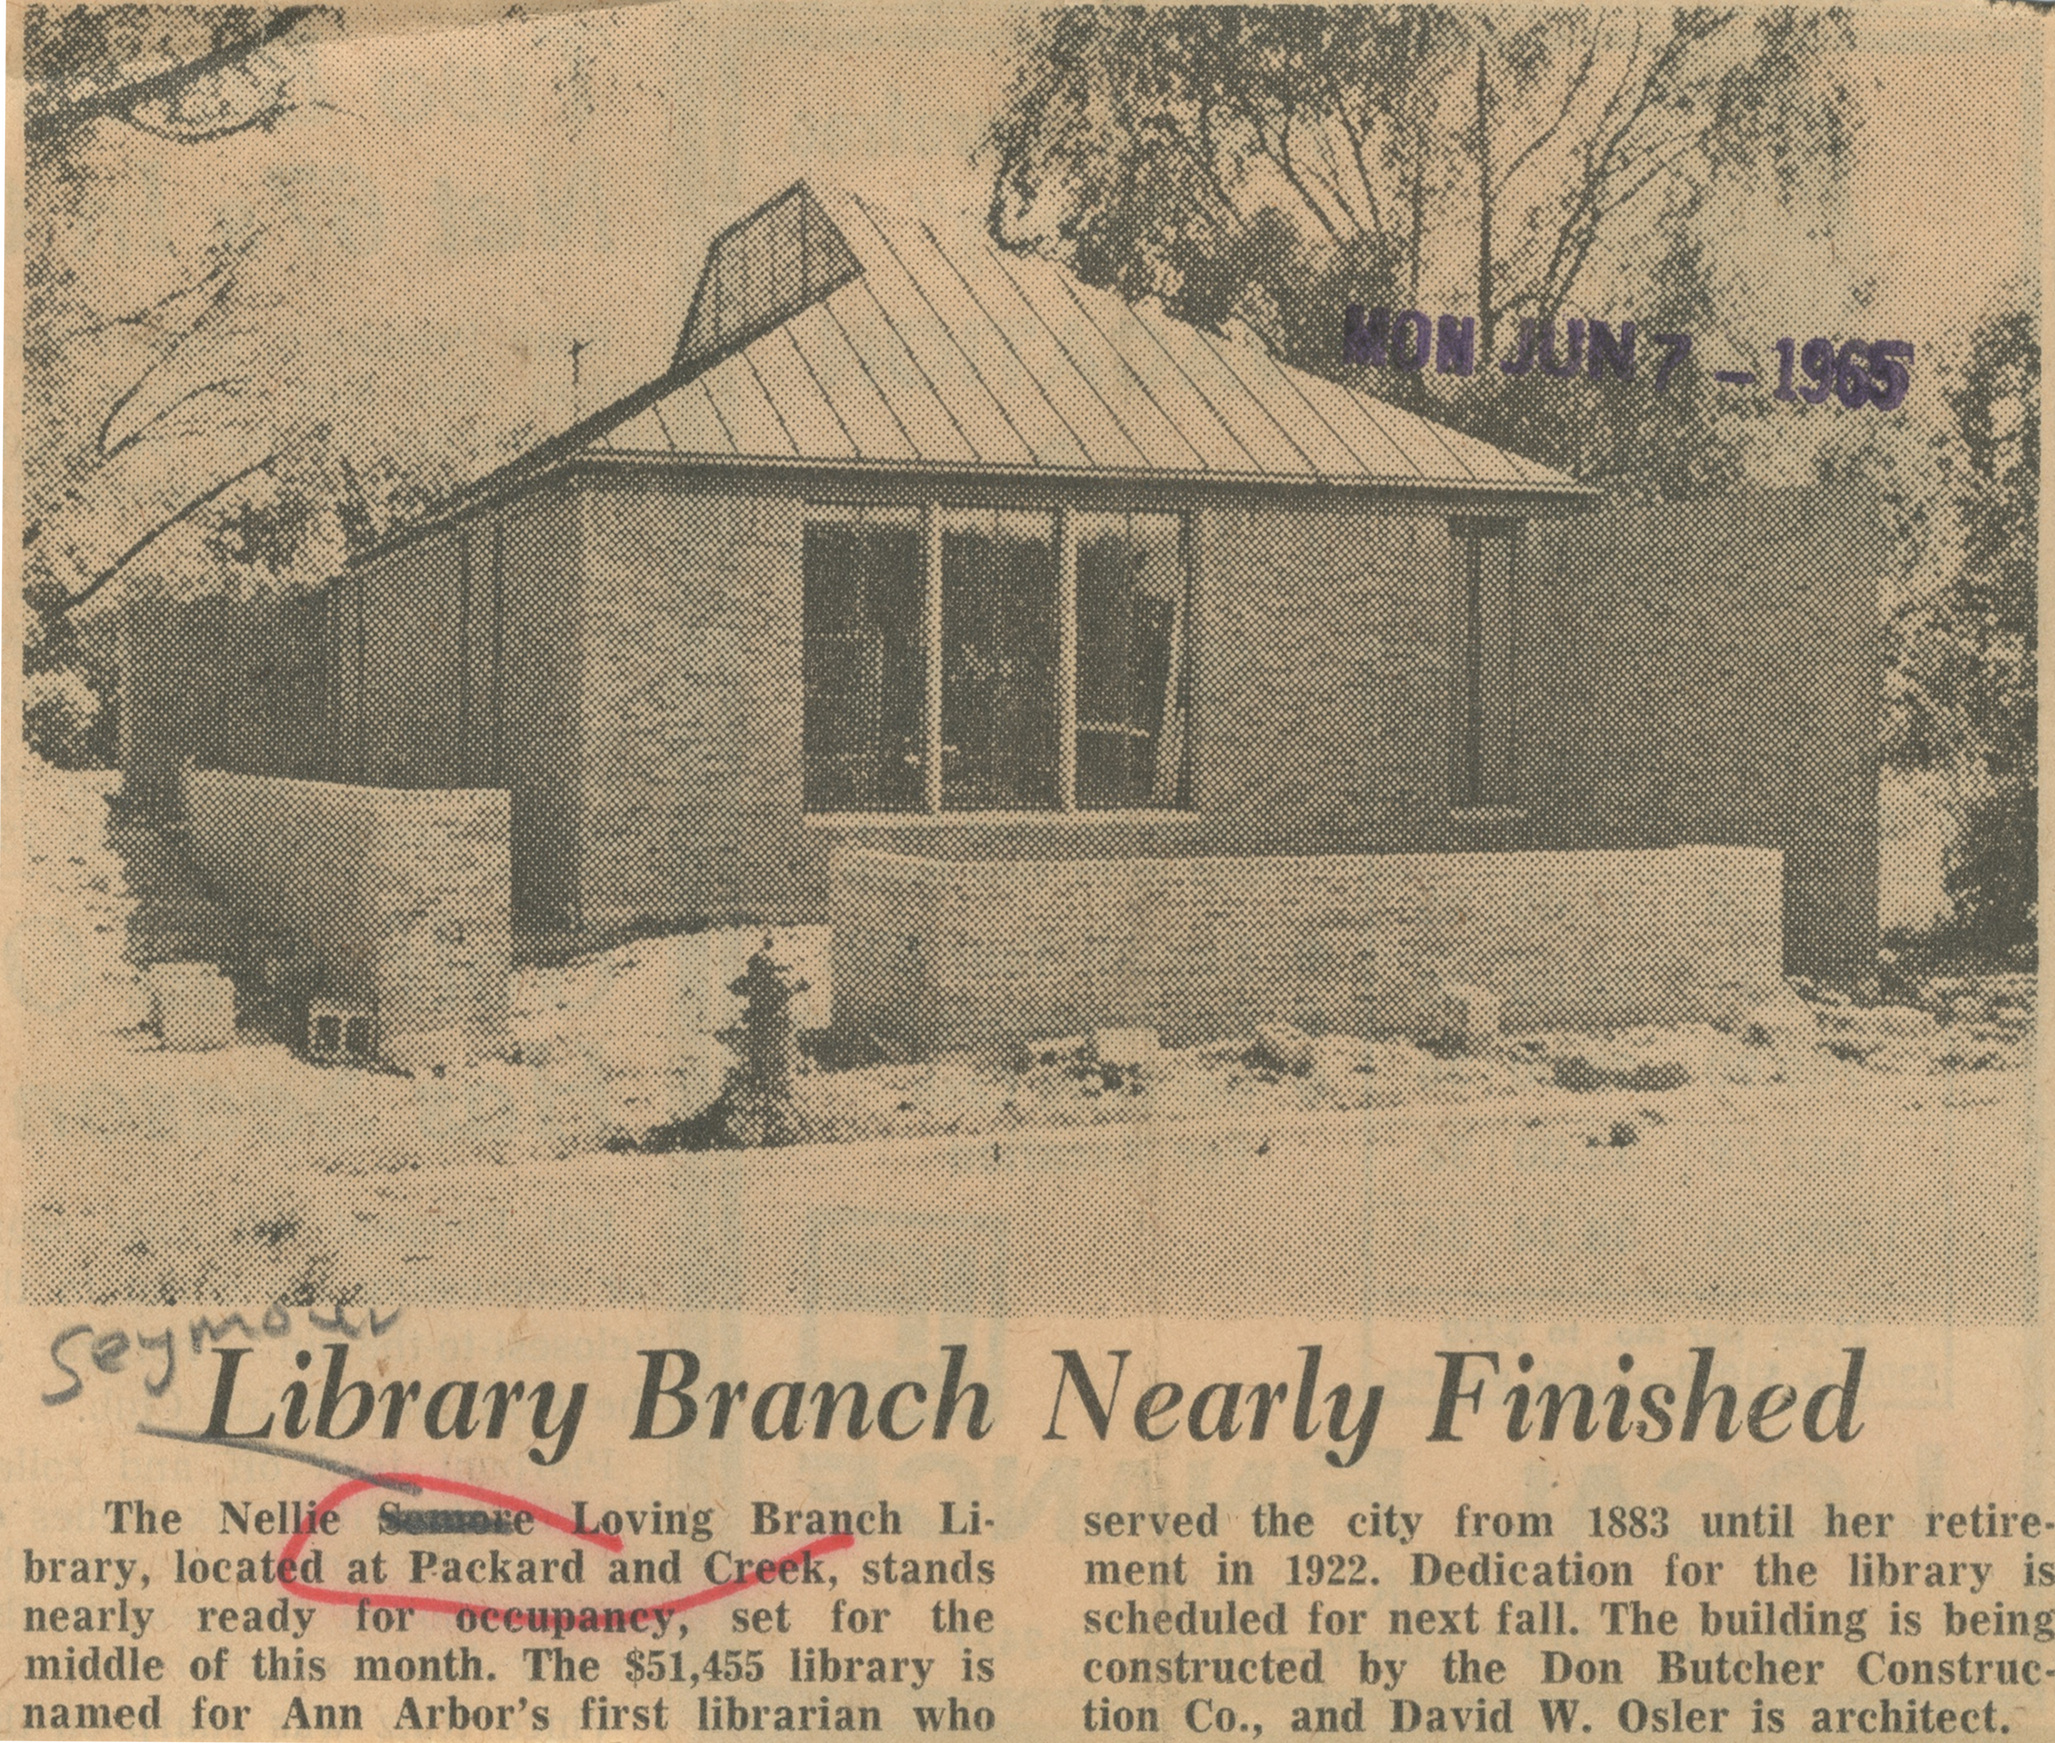 Library Branch Nearly Finished image